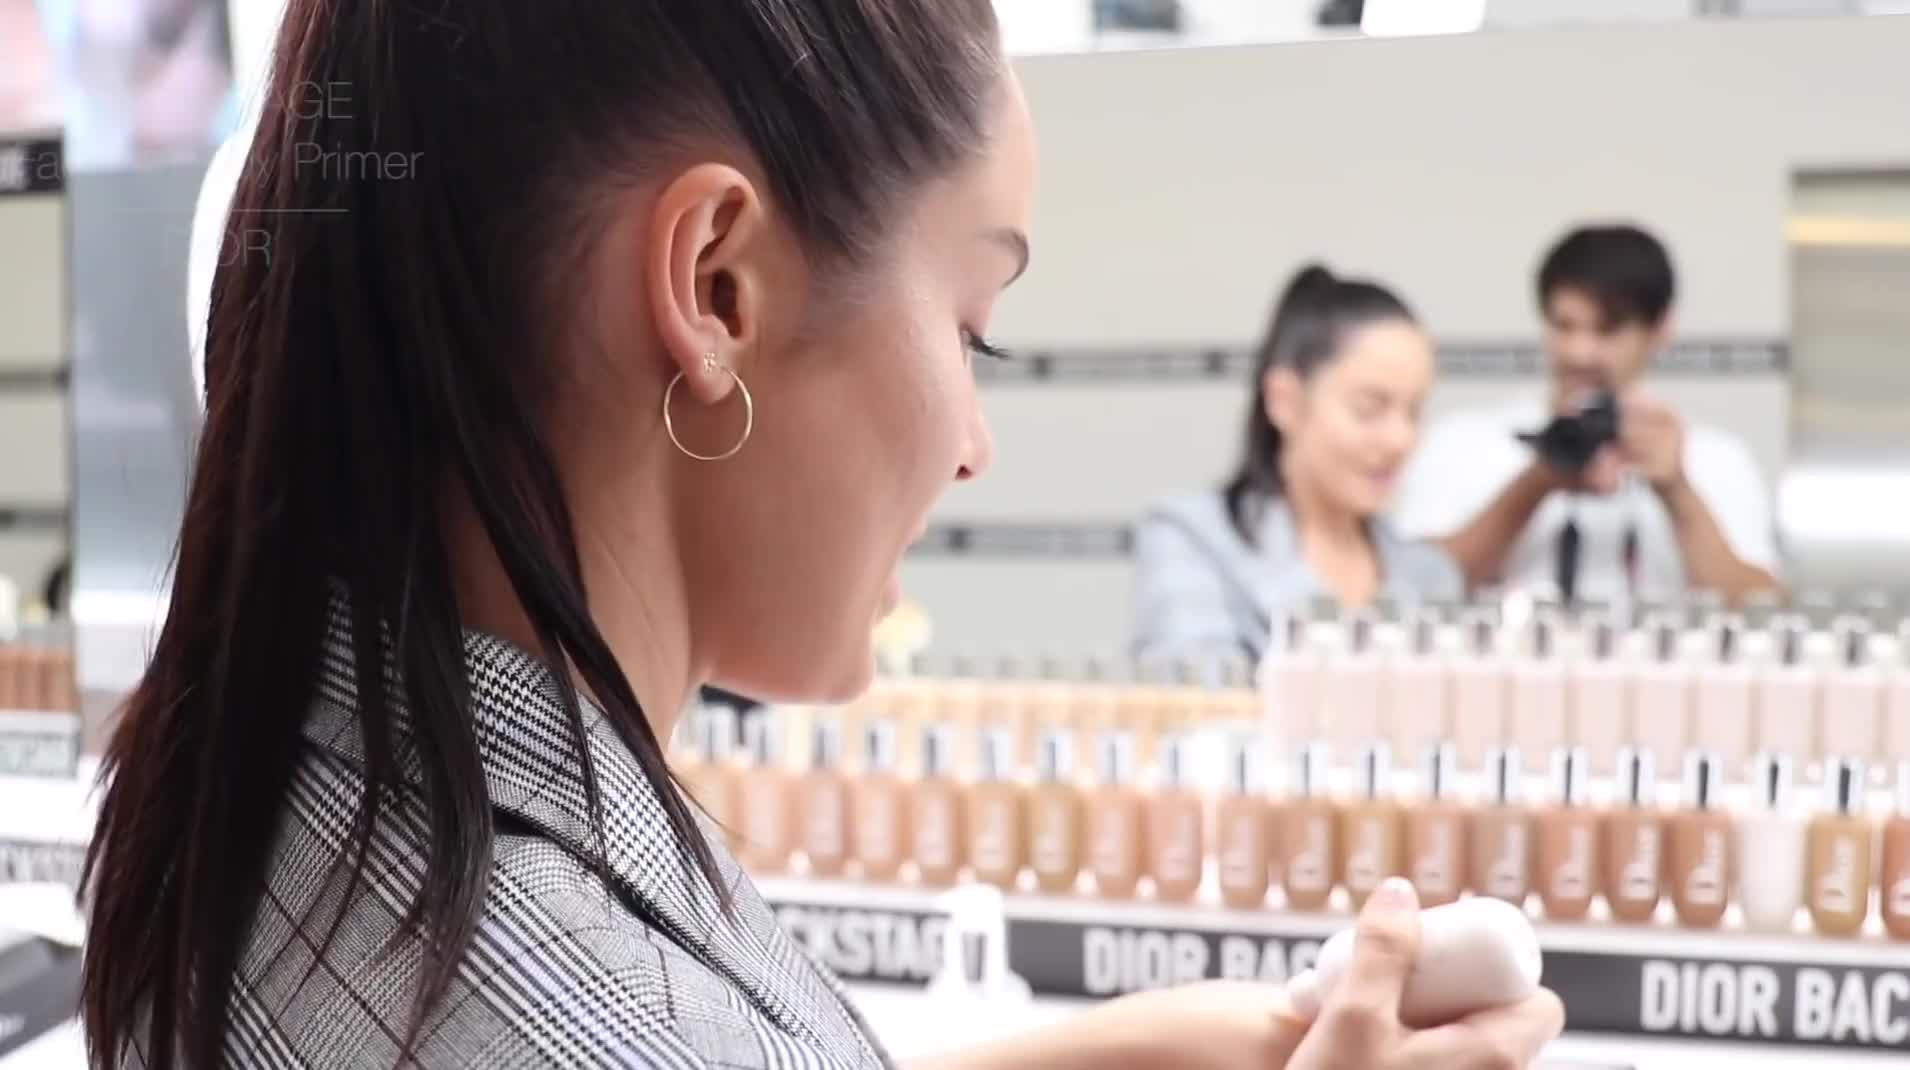 A day in my life! At the Dior Backstage launch in Los Angeles \\ Chloe Morello